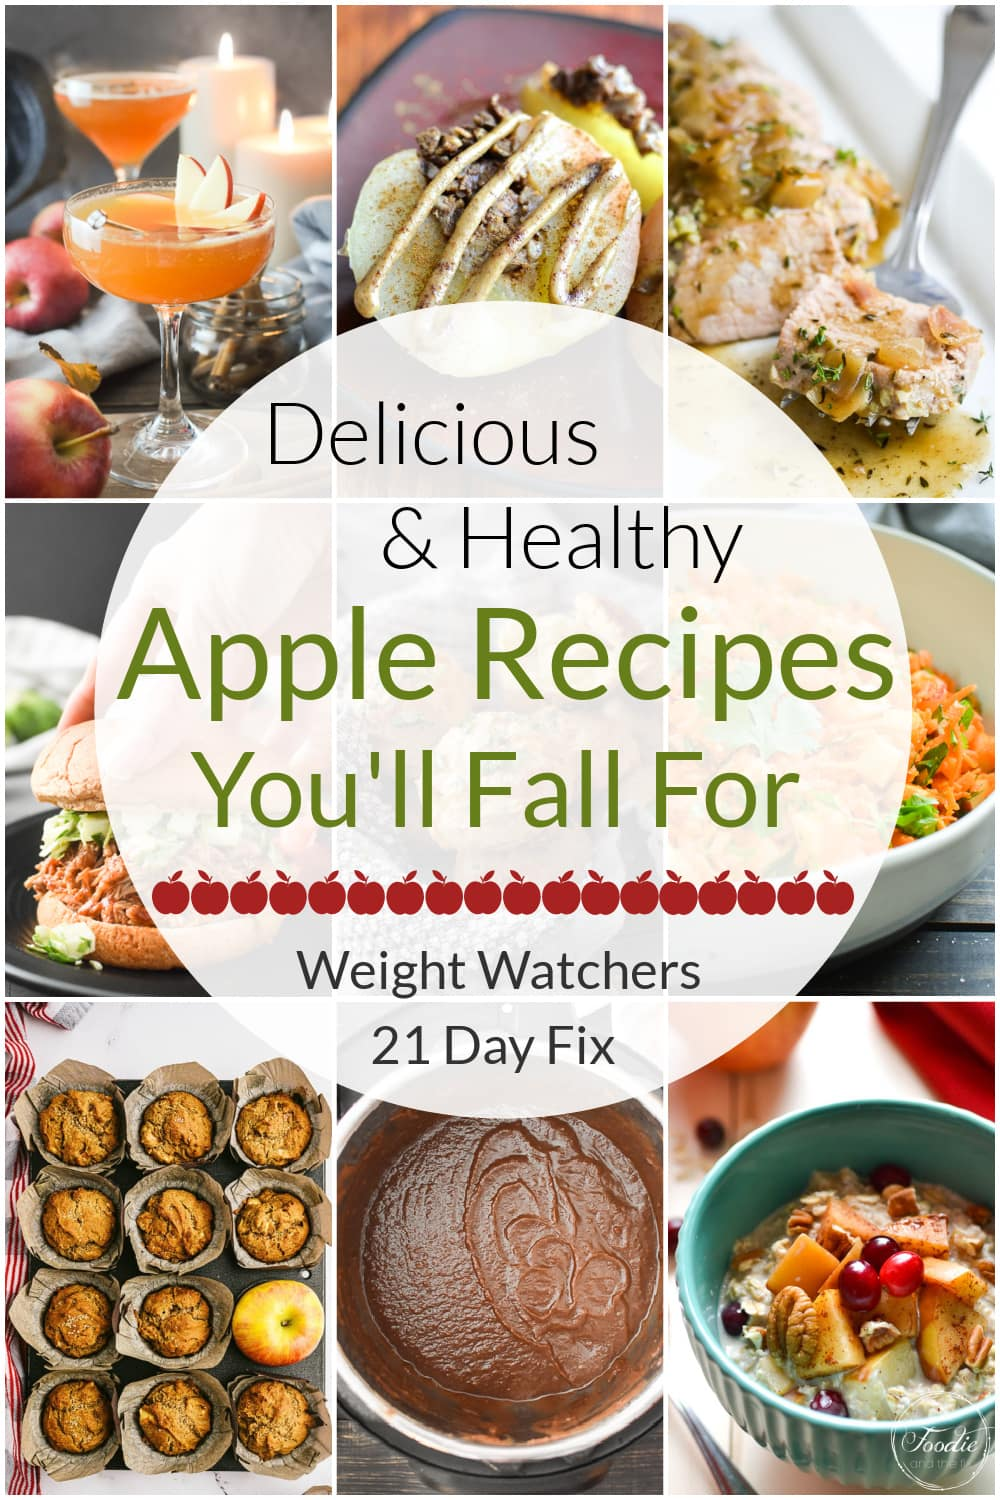 These delicious and Healthy Fall Apple Recipes are all 21 Day Fix approved and Weight Watchers friendly! Perfect for apple-picking season, most of them are kid-friendly, too! #21dayfix #beachbody #healthyrecipes #healthy #fall #healthyfall #apples #applerecipes #ww #weightwatchers #kidfriendly #thanksgiving